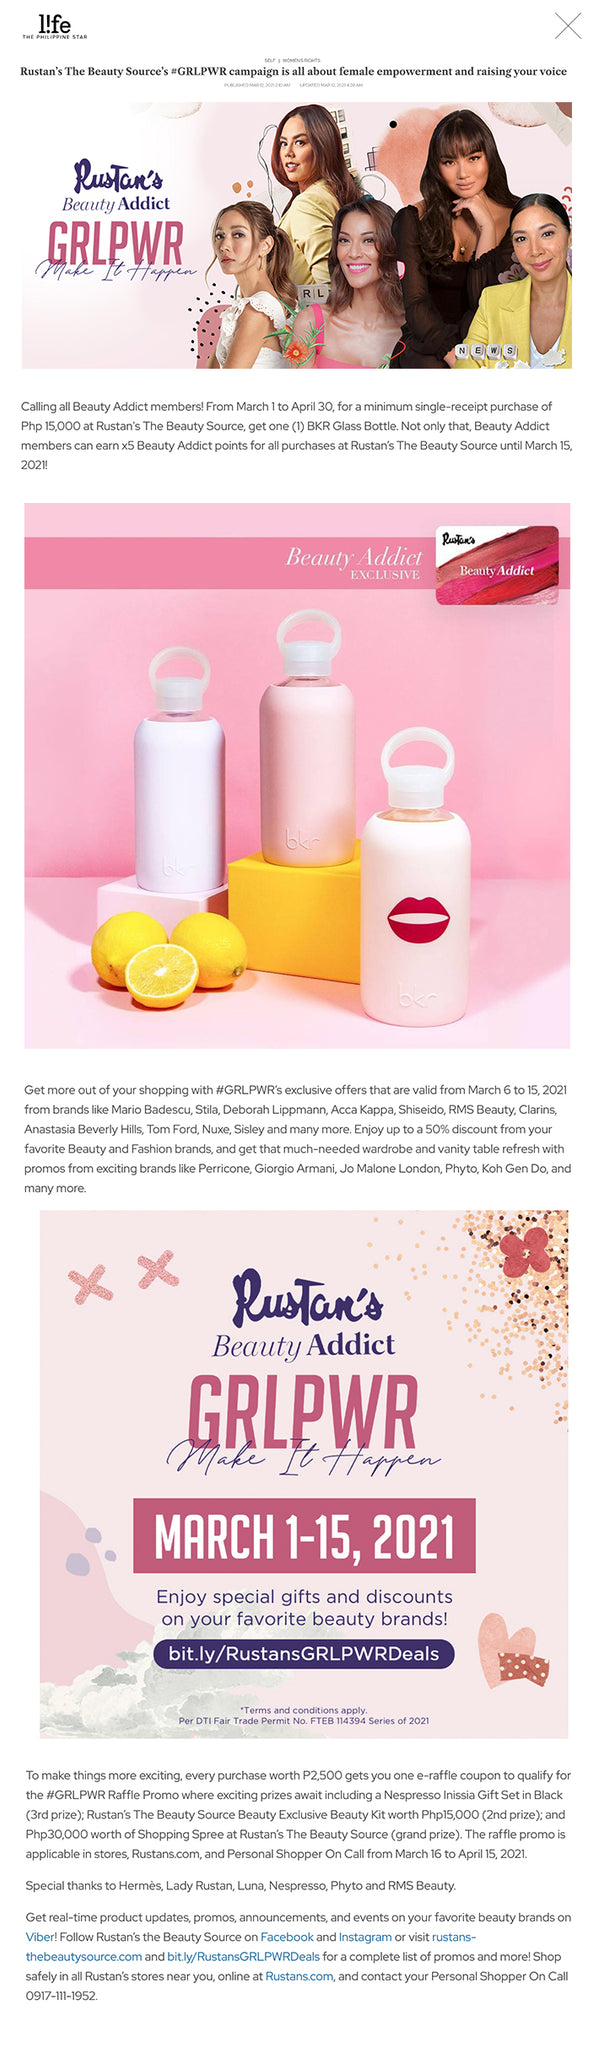 """Rustan's The Beauty Source's #GRLPWR campaign is all about female empowerment and raising your voice PUBLISHED MAR 12, 2021 2:10 AM UPDATED MAR 12, 2021 4:28 AM  BrandedUp in partnership with  Every day is worthy of a celebration, but this month is even more special as we celebrate International Women's Month!   Following last year's success of the first-ever Rustan's Beauty Addict #GRLPWR event, this 2021, Rustan's presents #GRLPWR: Make It Happen, a live beauty event dedicated to inspire and honor women, featuring panelists Nikki Huang (writer and student), Janina Manipol (film director, entrepreneur, and content creator), Joey Mead-King (multimedia host, PAWS advocate, and holistic meditative enthusiast), and Pinky Webb (journalist, CNN Philippines Senior Anchor and correspondent). During the event, these amazing women talked about their careers, passions, advocacies, and everything in between.    Hosted by Marie Lozano, this year's online event was held last March 5, 4 pm via Rustan's The Beauty Source Facebook Page. Each guest was asked to share about their personal challenges during the pandemic, personal style, beauty routines, advocacies, advice to their fellow women to get through our current situation, and more. Scroll further to see some of their inspiring words:  Janina Manipol on how to boost your productivity at home    """"What I do to be able to be productive at home is I spruce up my workstation. If you're just at home, it's important to have a defined work schedule for the day, write your task, have a goal list, and have a positive attitude always—that's me, I always want to be positive and happy.   Most importantly, be creative and don't let your confined circumstances hinder you from your productivity. For me, your greatest power is your perspective.""""  On coping with our current situation and how others can curb their worries to something positive  """"I usually just keep myself busy. I like learning new things, so I invest a lot of time in my growth. """